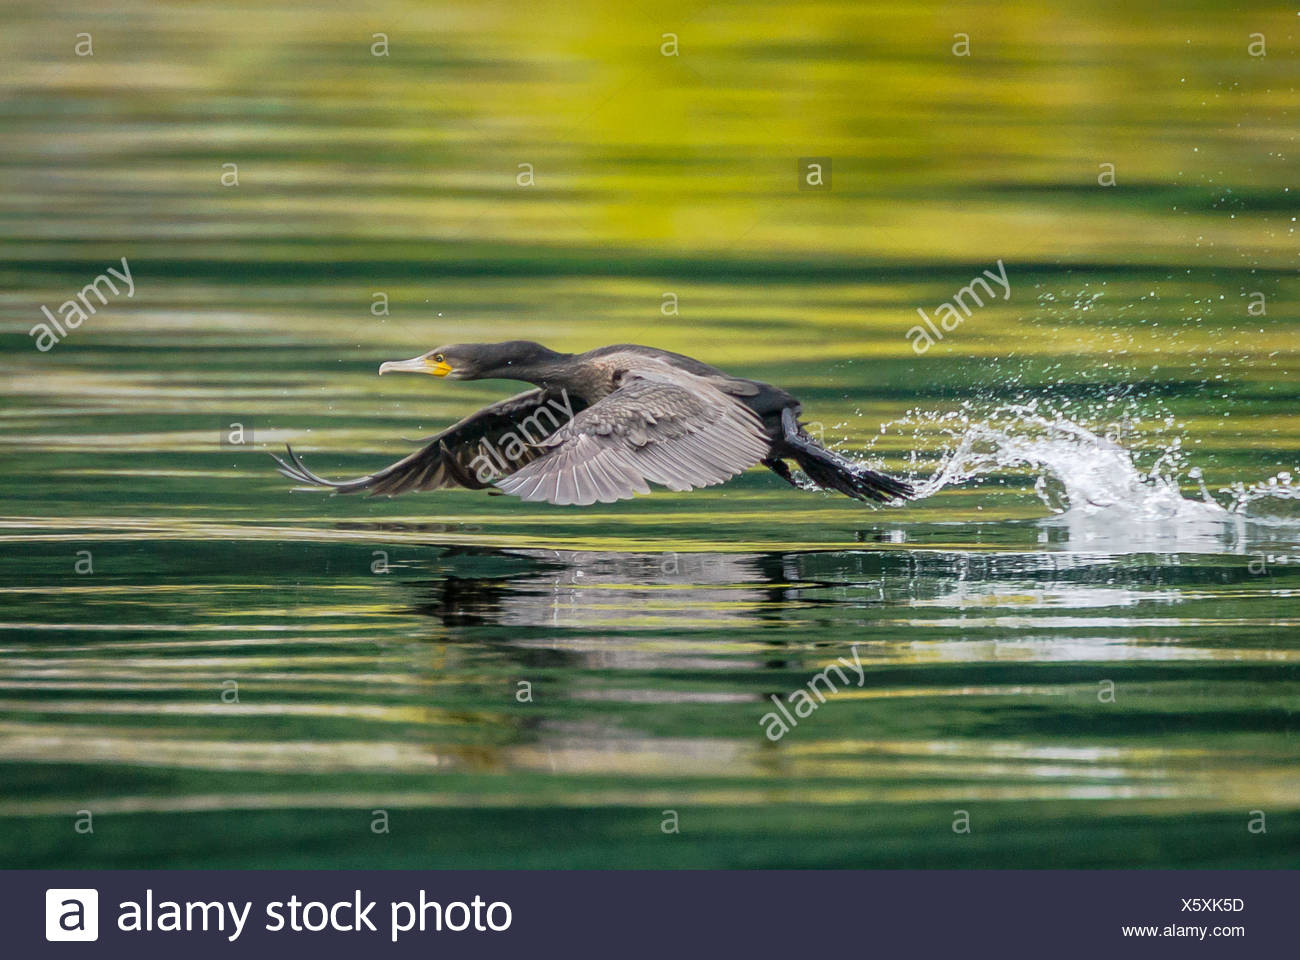 Bird flying low over water - Stock Image